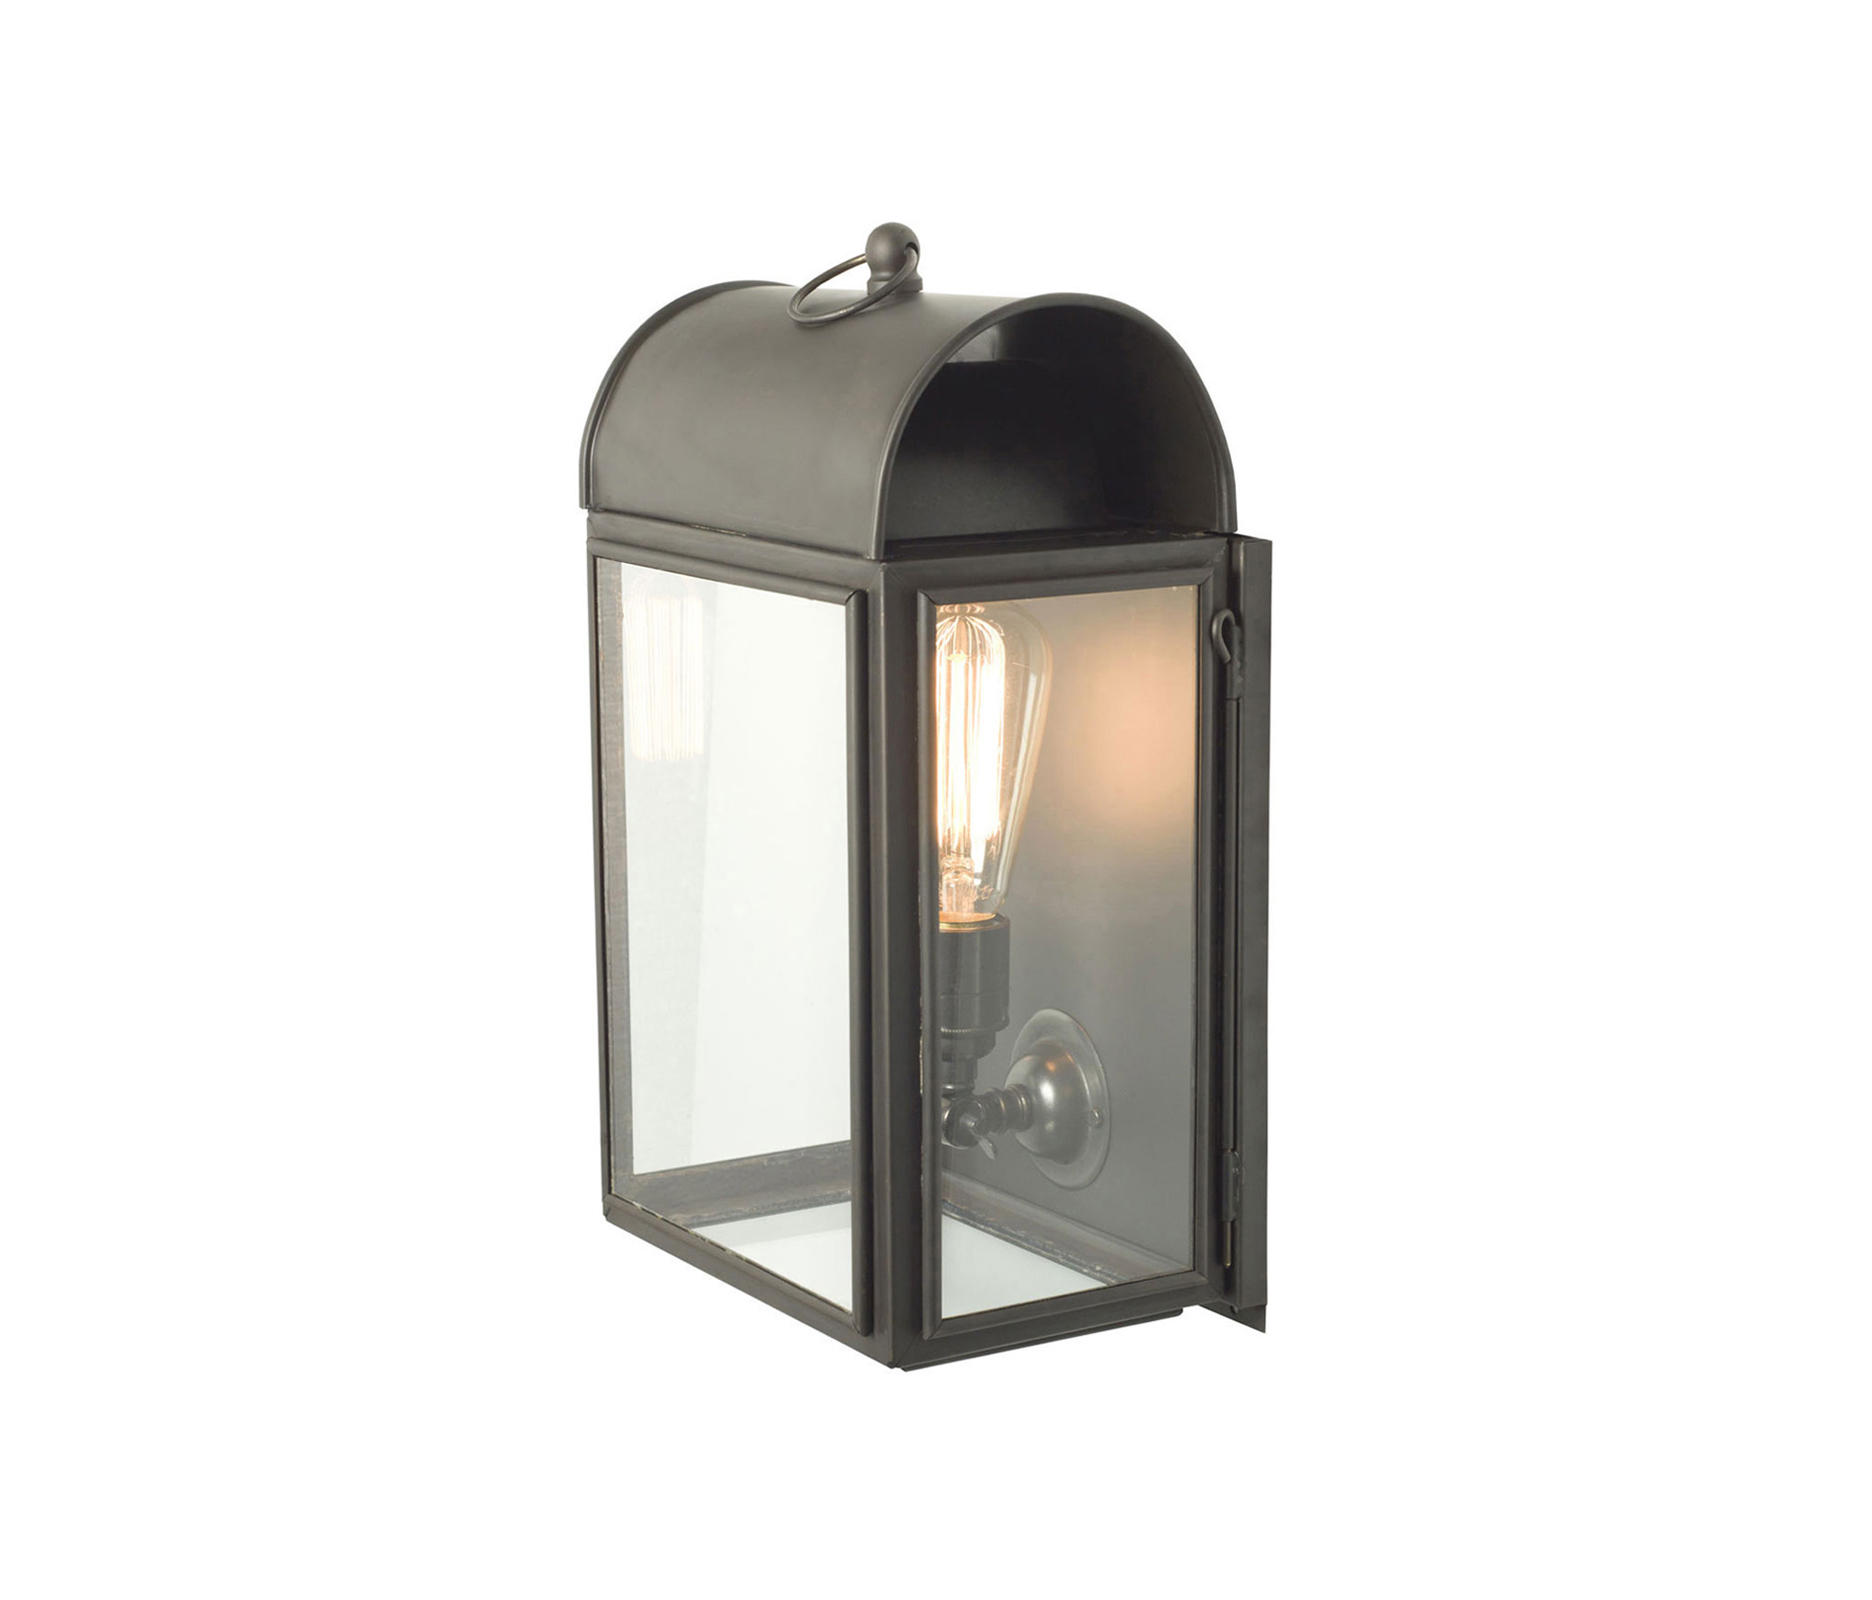 Glass Box Wall Lights : 7250 DOMED BOX WALL LIGHT, WEATHERED BRASS, CLEAR GLASS - General lighting from Davey Lighting..